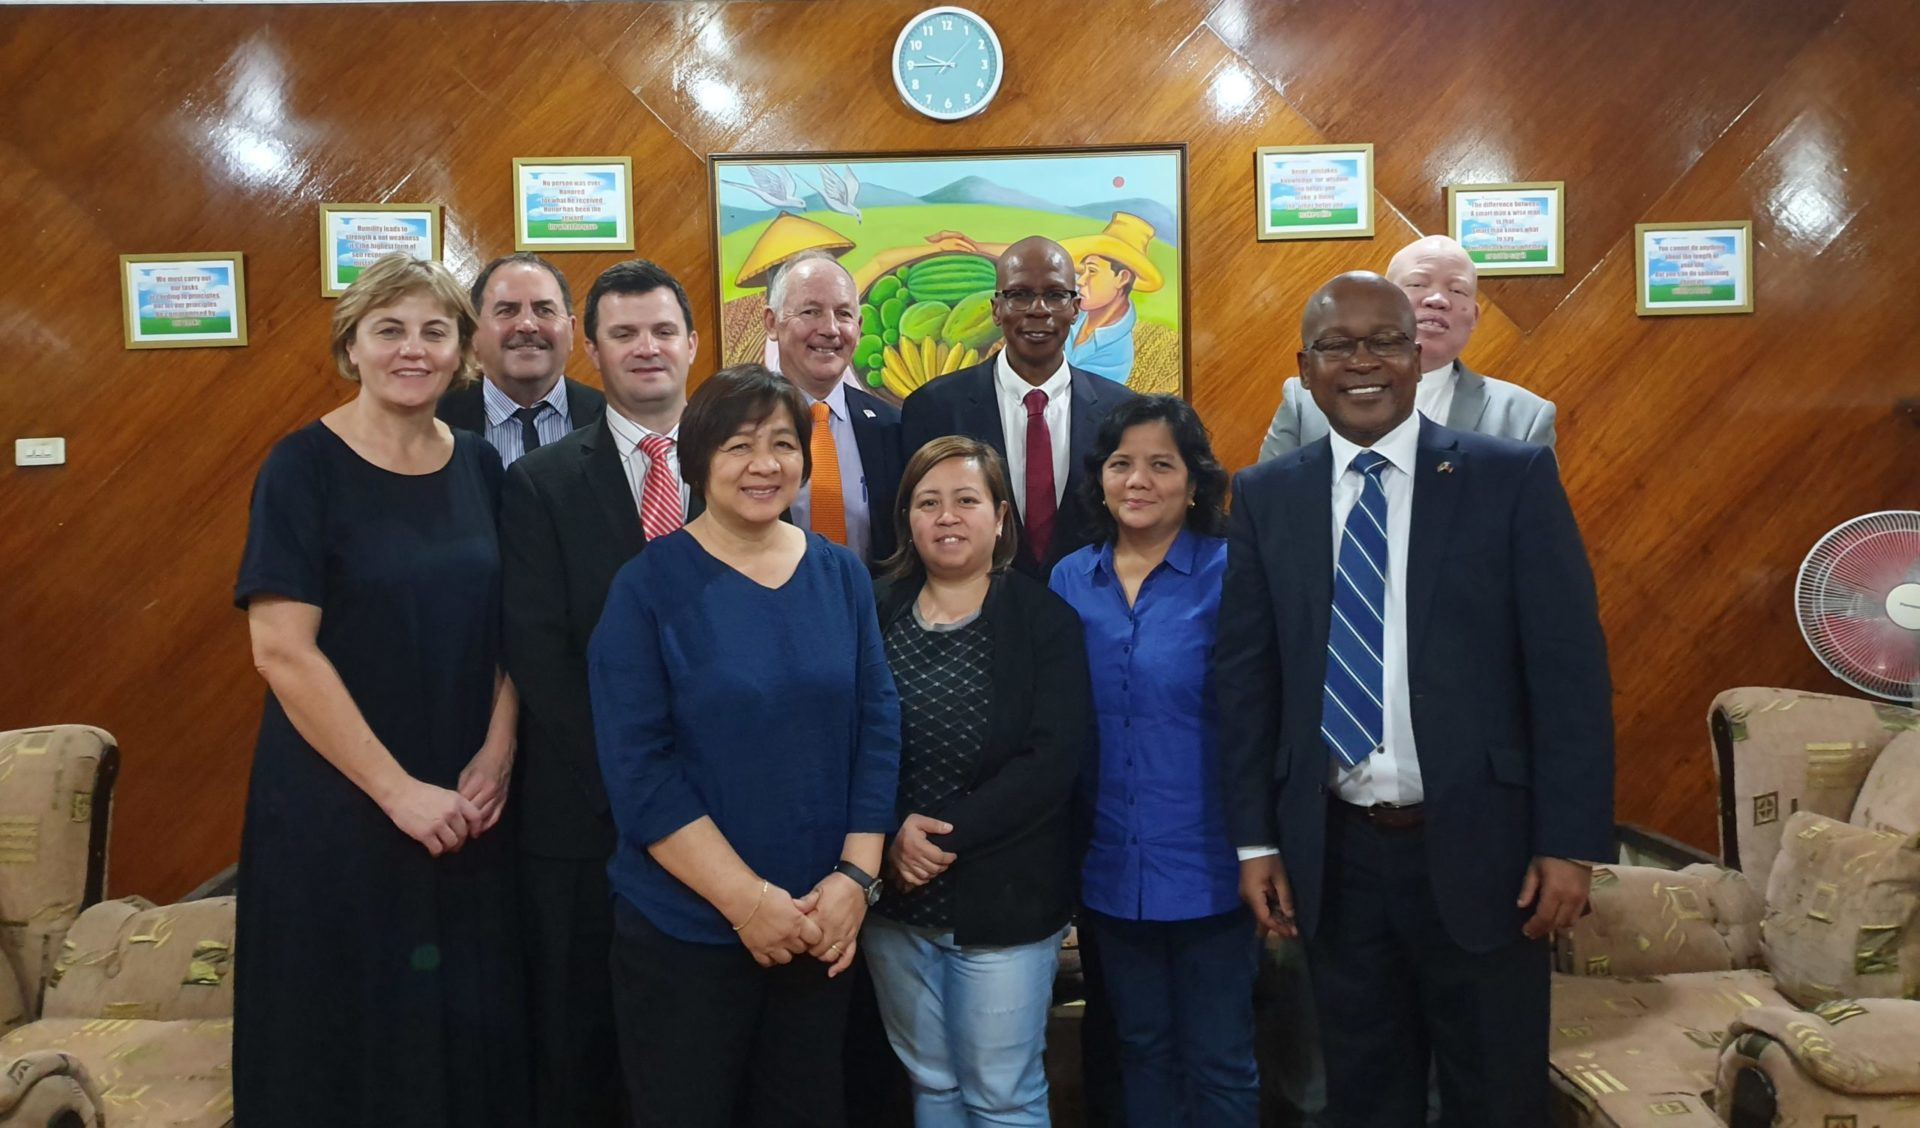 (Back row, third from left) Mooketsa Ramasodi, deputy director-general at the department of agriculture and (front row, first from right) Sitembele Kelembe, South African department of agriculture representative in Japan, with Philippine delegates during the lengthy negotiations to open up the Philippine market to South African citrus. Photo: Supplied